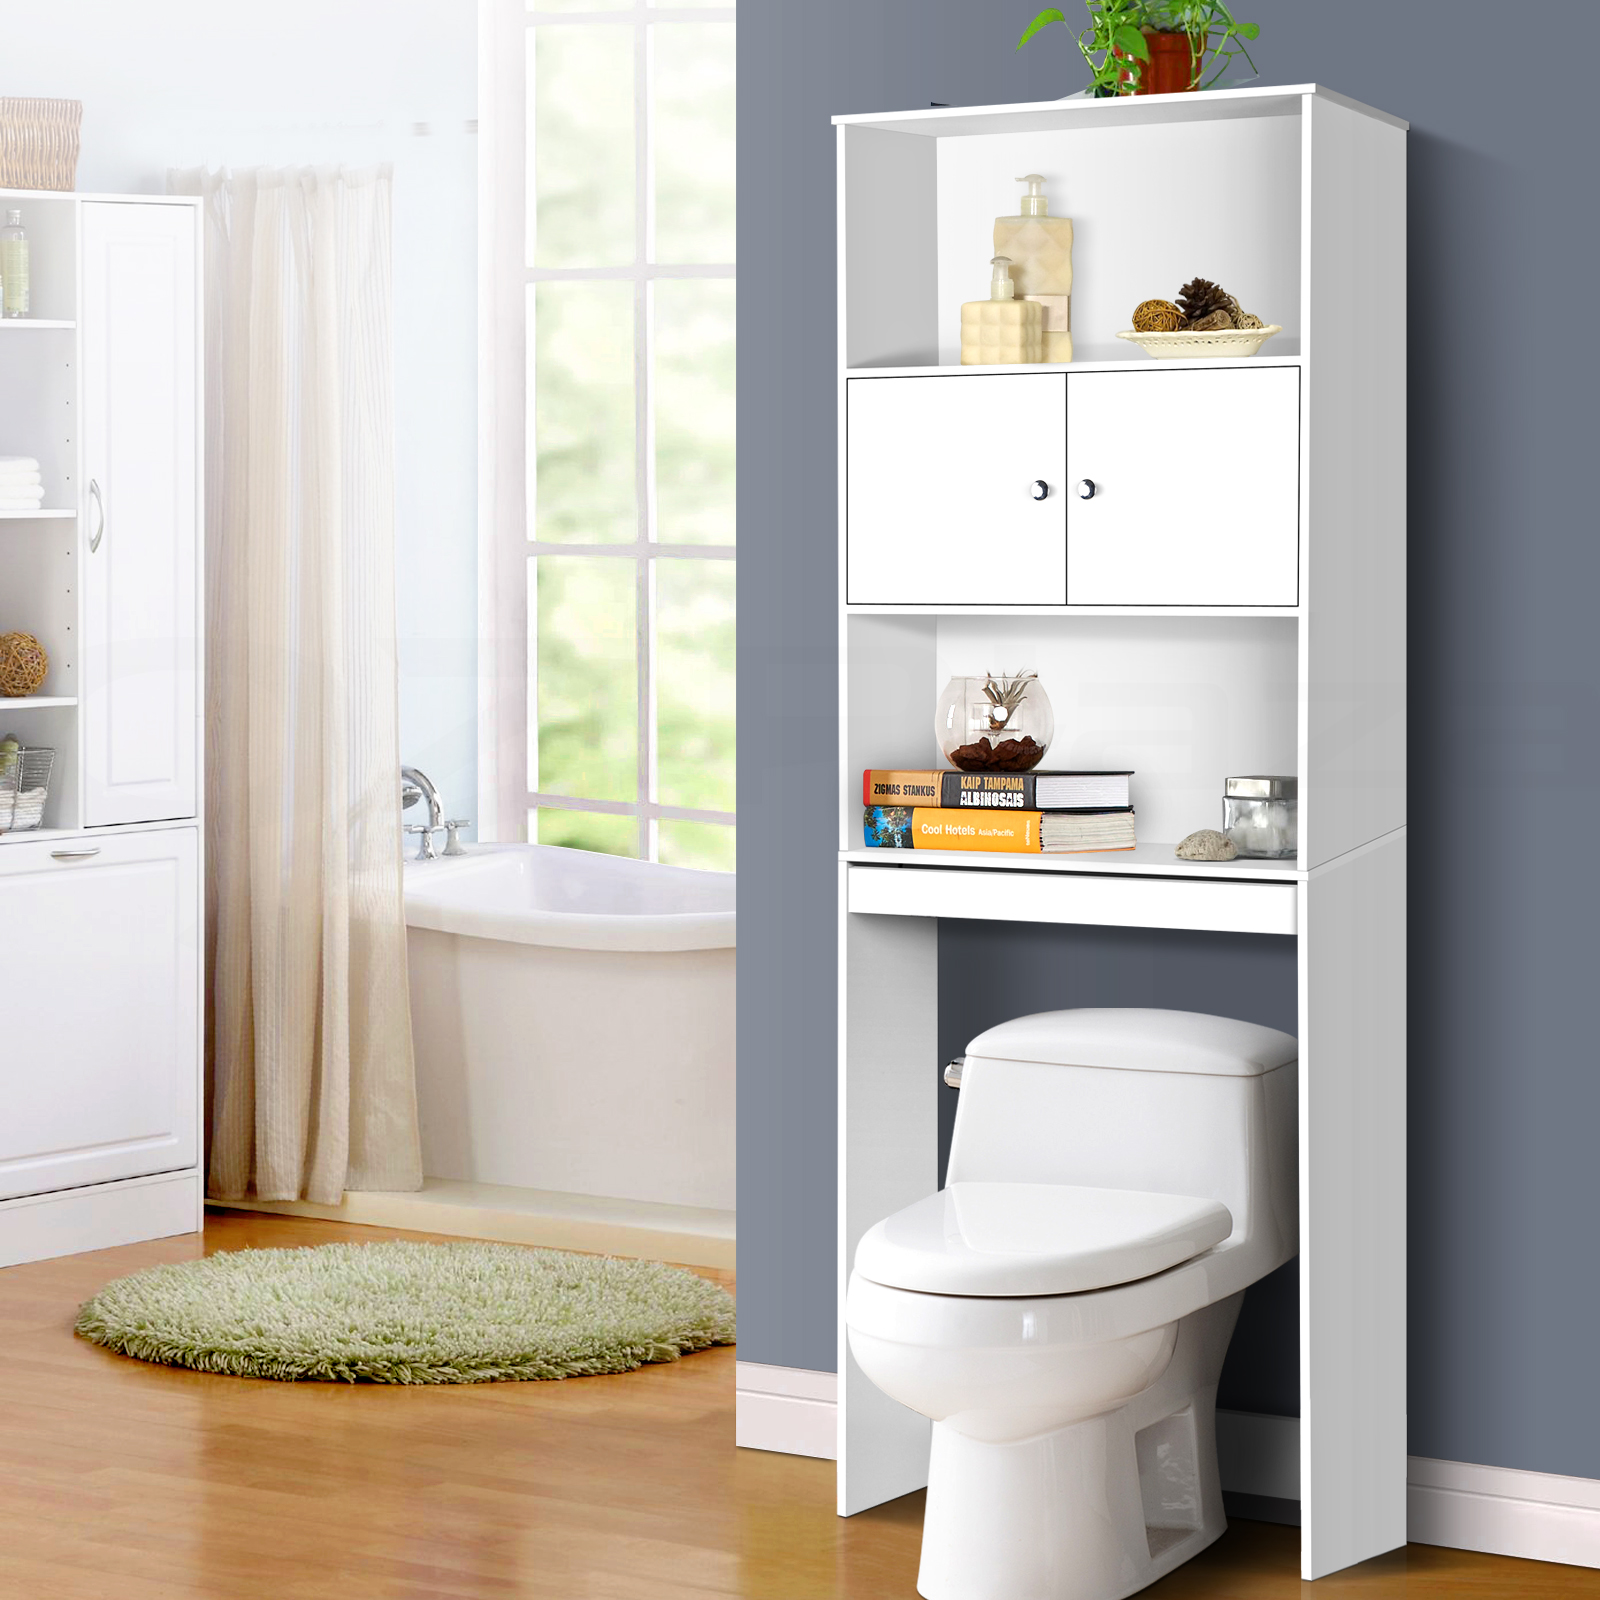 Over The Toilet Storage Unit White Bathroom Furniture Cupboard Shelf Cabinet 9350062137086 Ebay